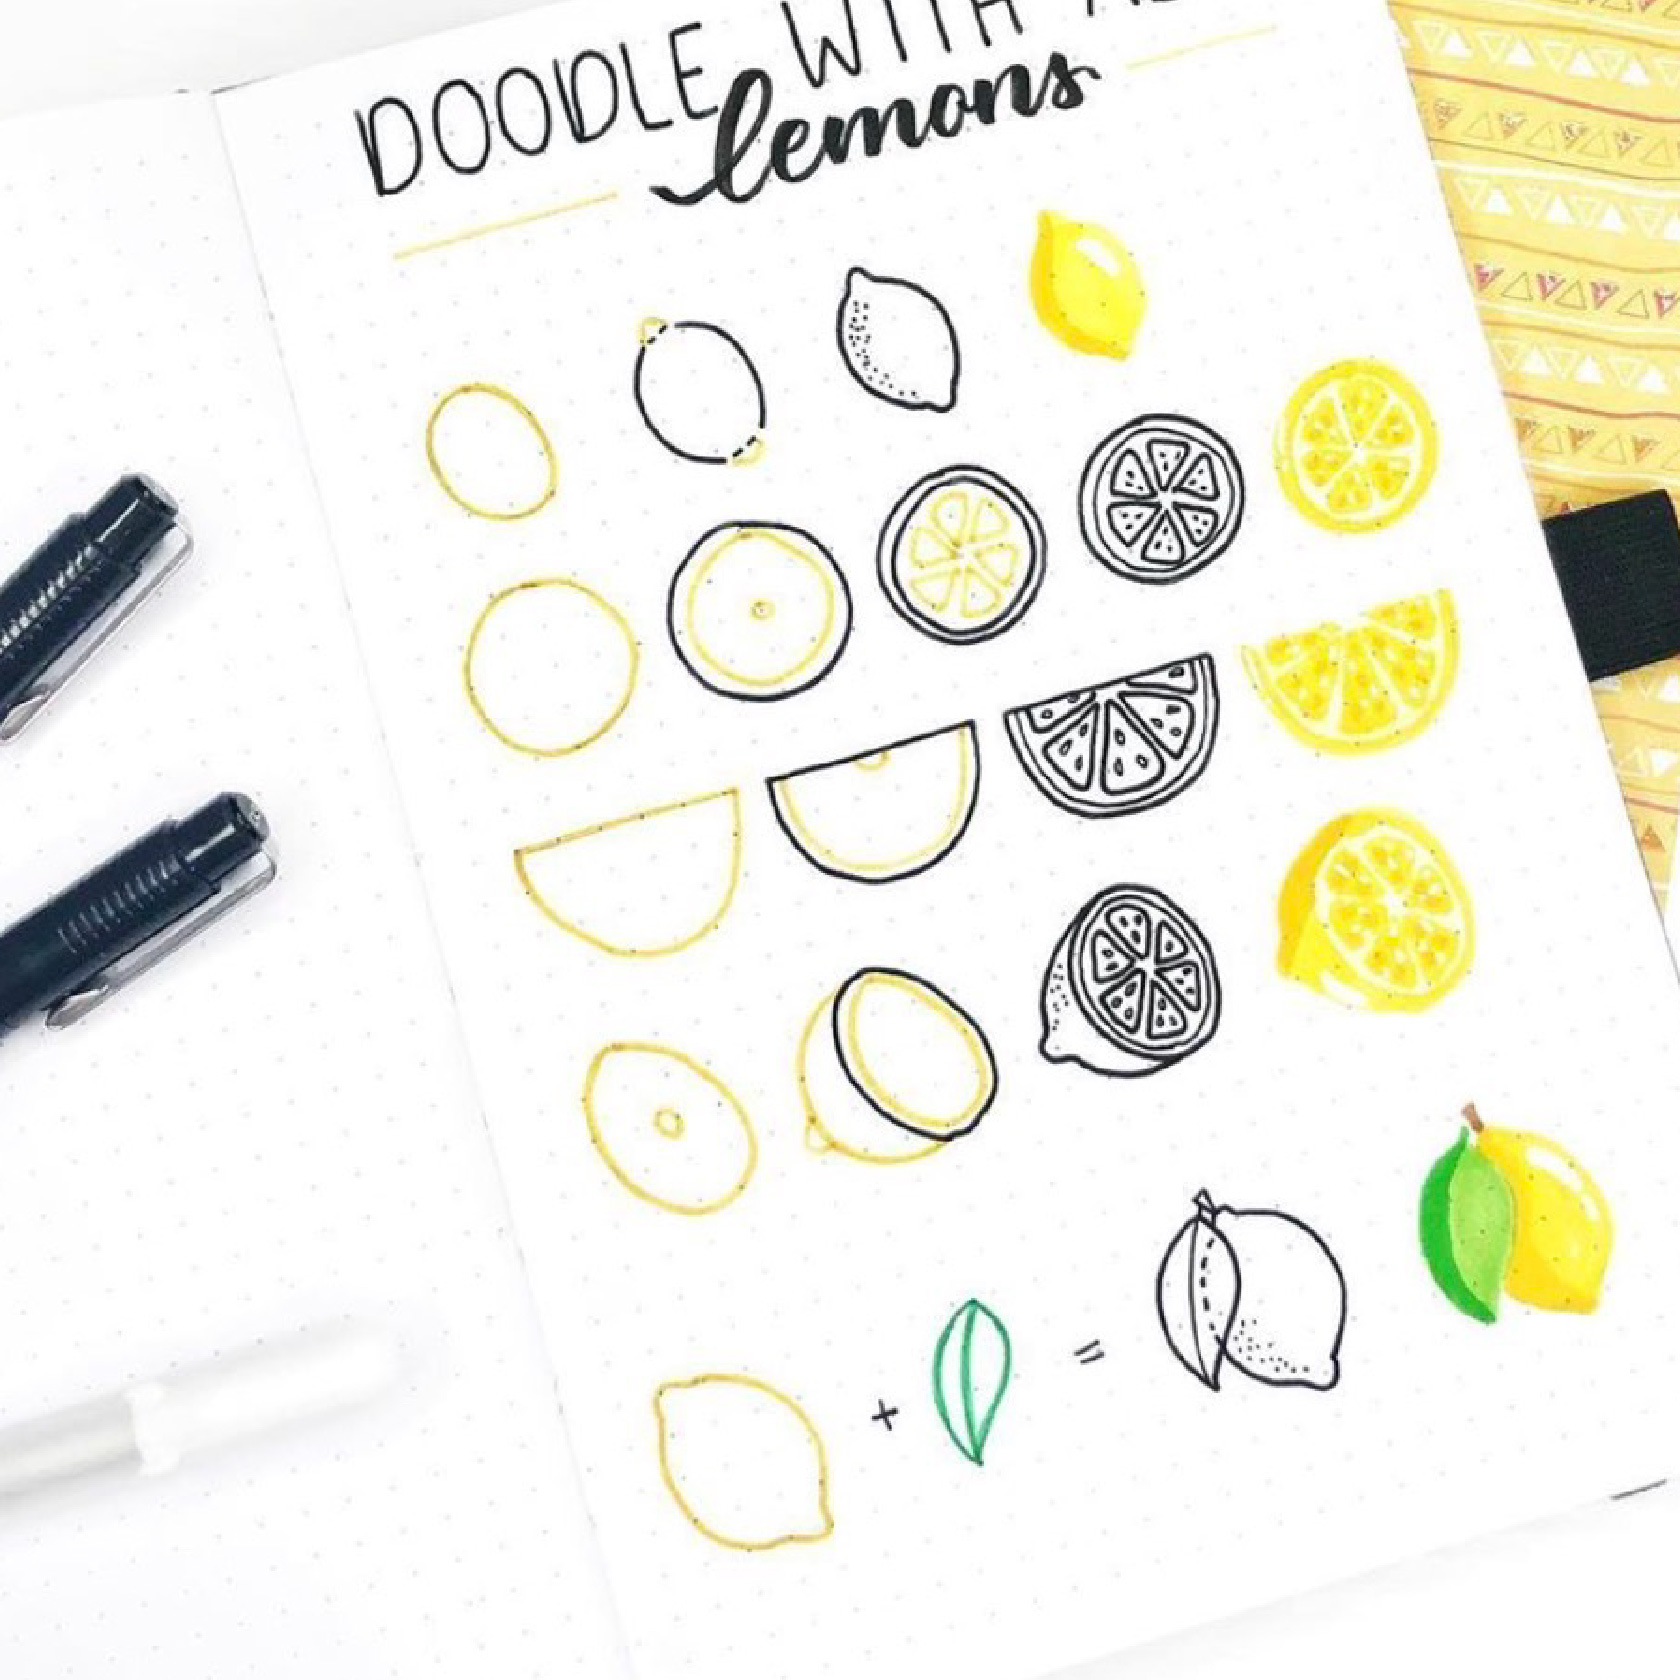 step by step doodles for bullet journals and planners